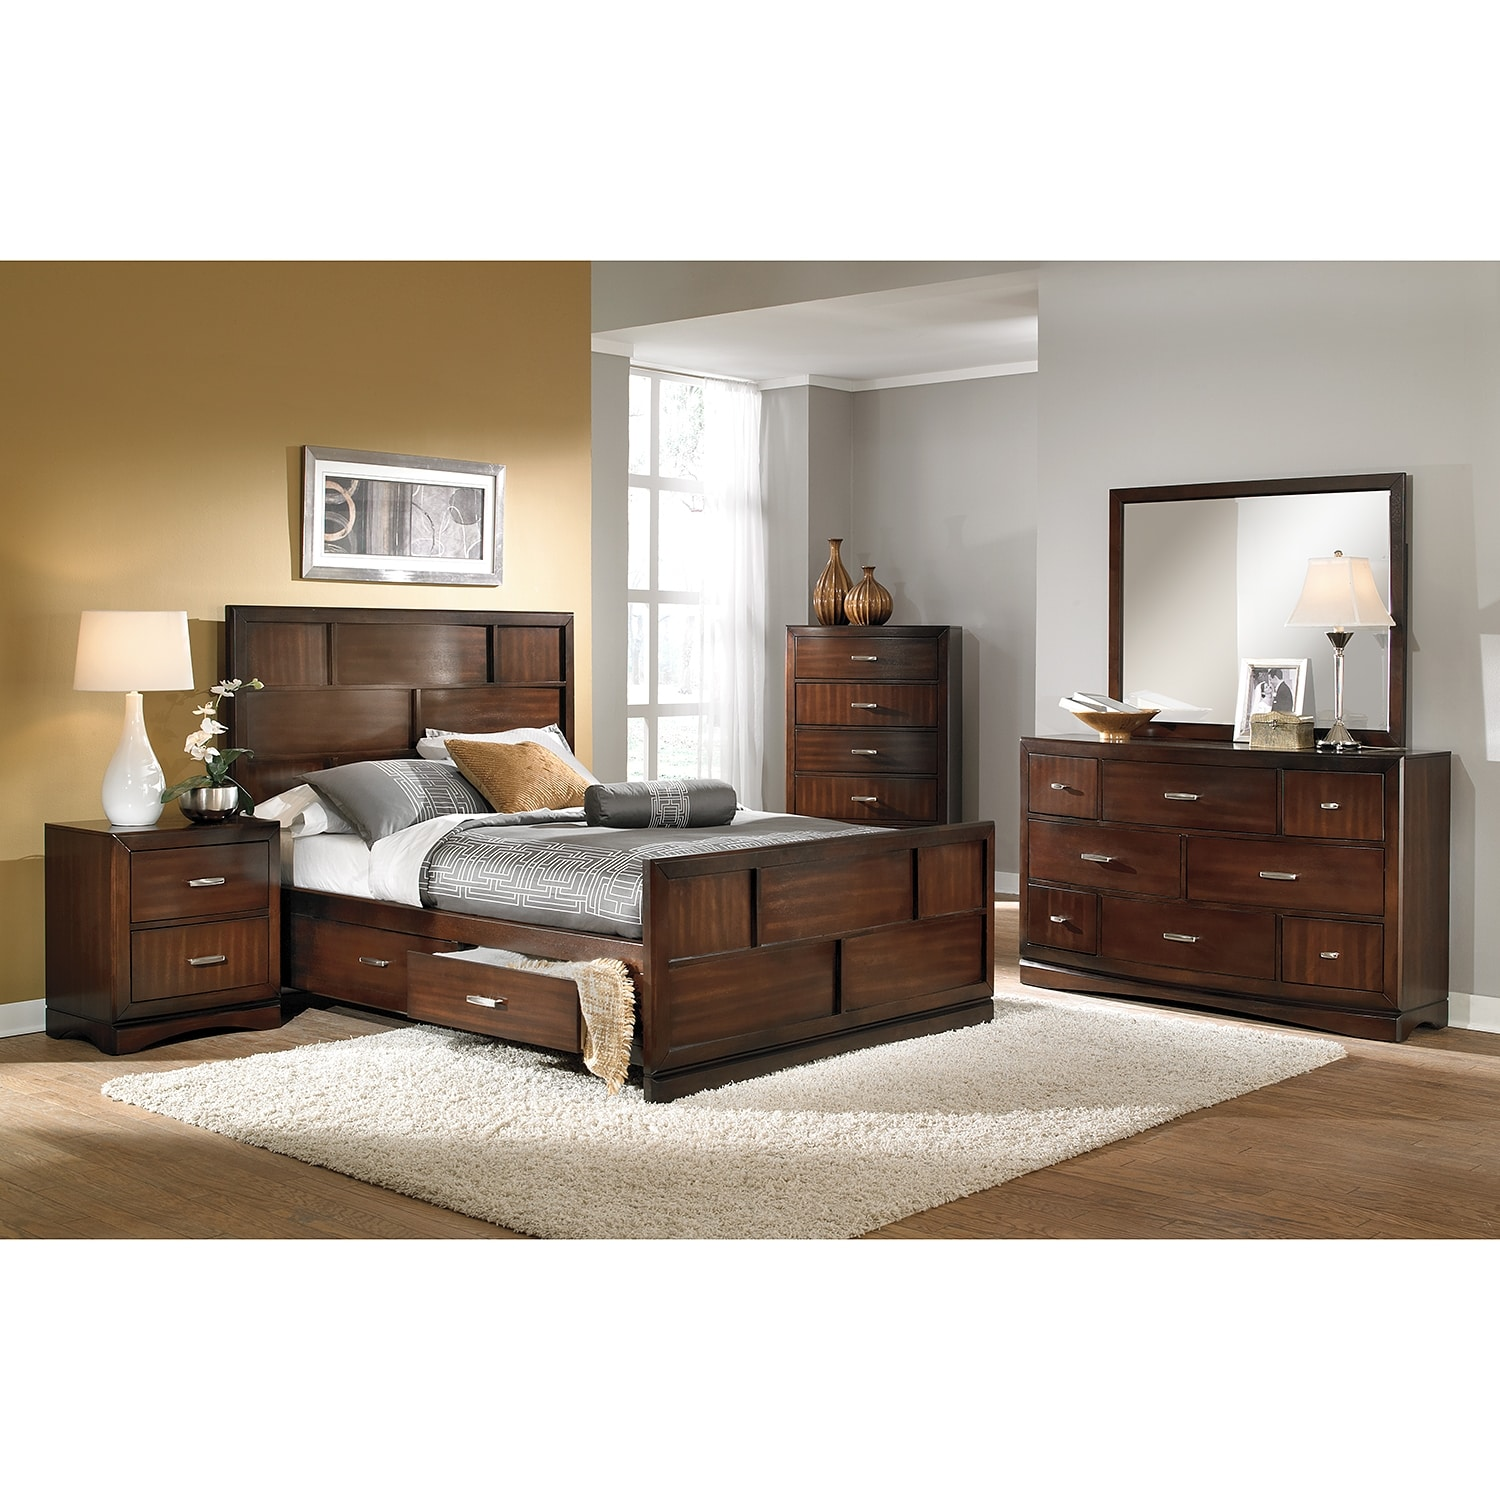 Furniture Toronto Com Toronto Pecan Storage Bed